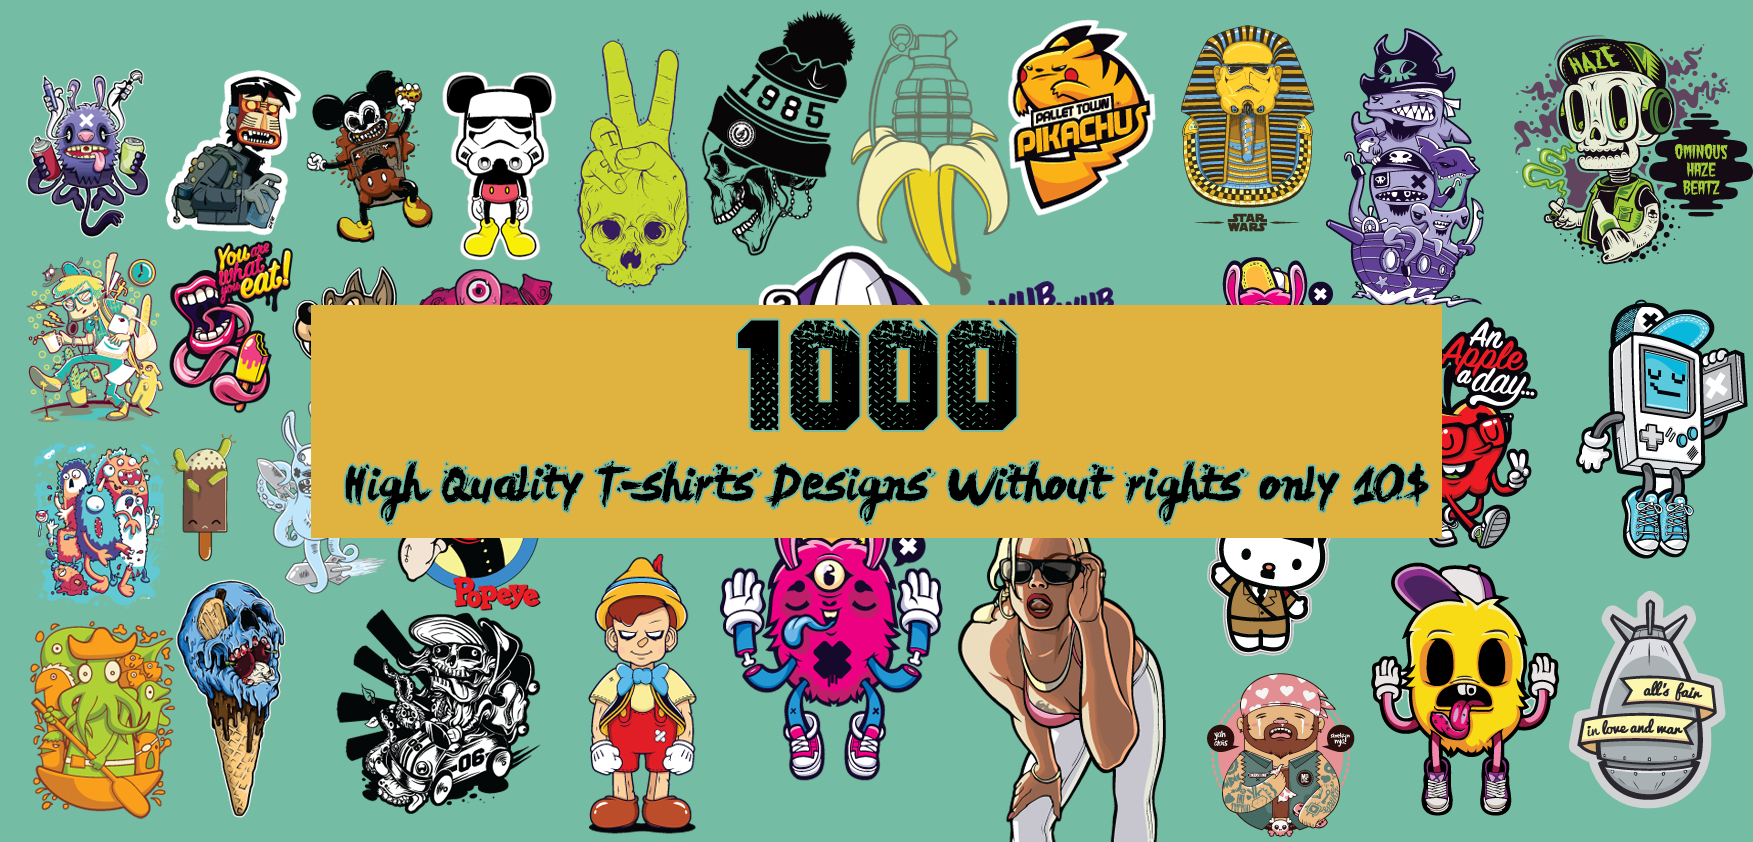 I will deliver 1000 high quality t-shirts designs without rights